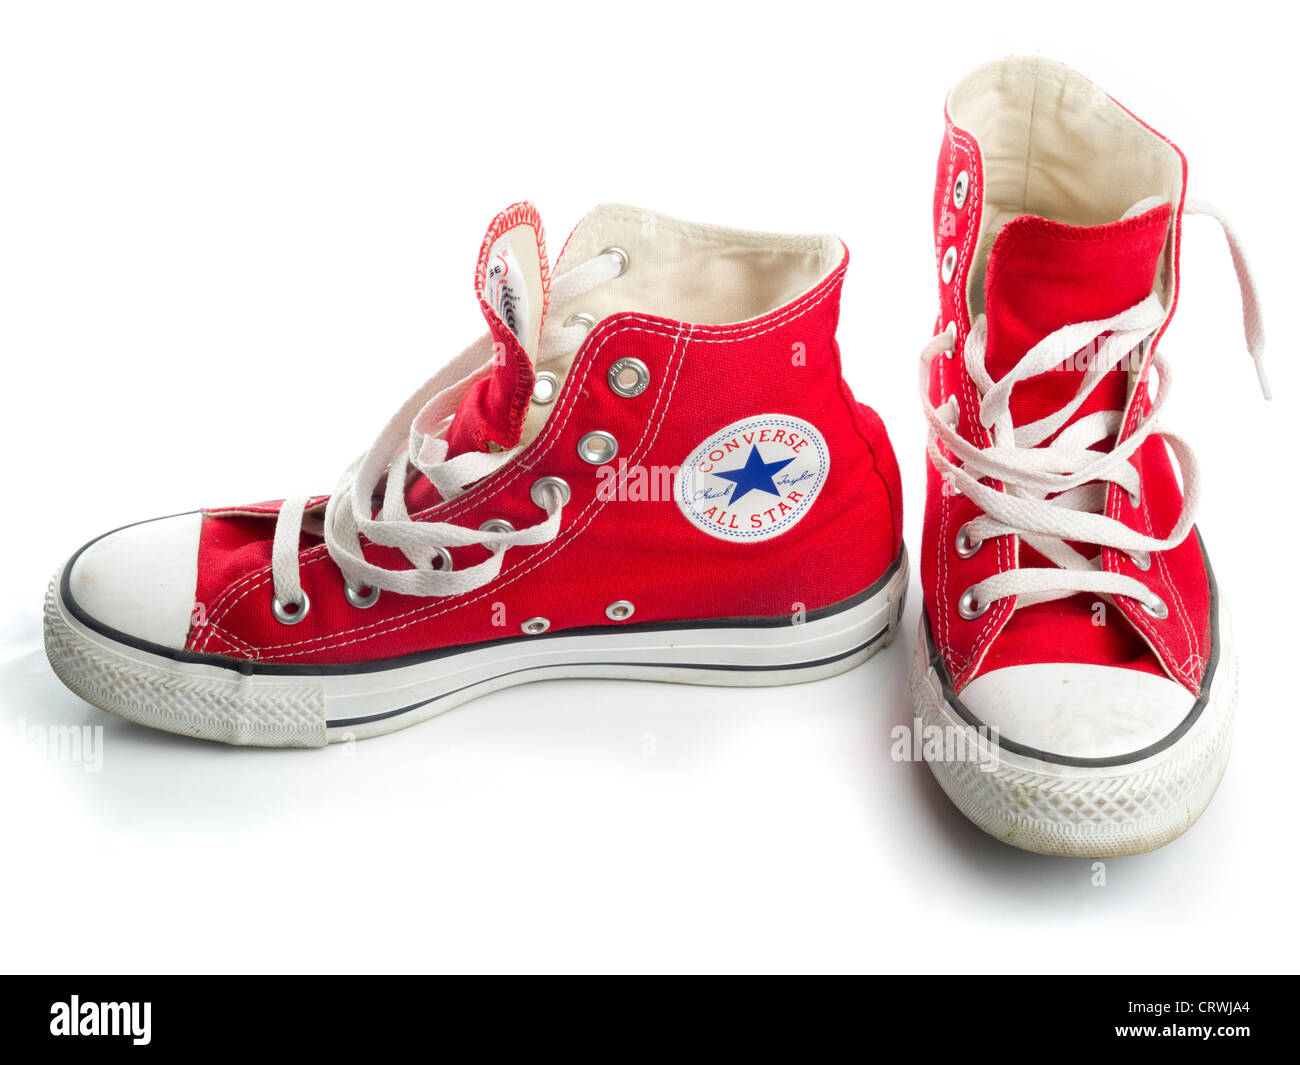 740a13b2cdbf Red Converse Chuck Taylor All Star shoe pair Stock Photo  49121020 ...